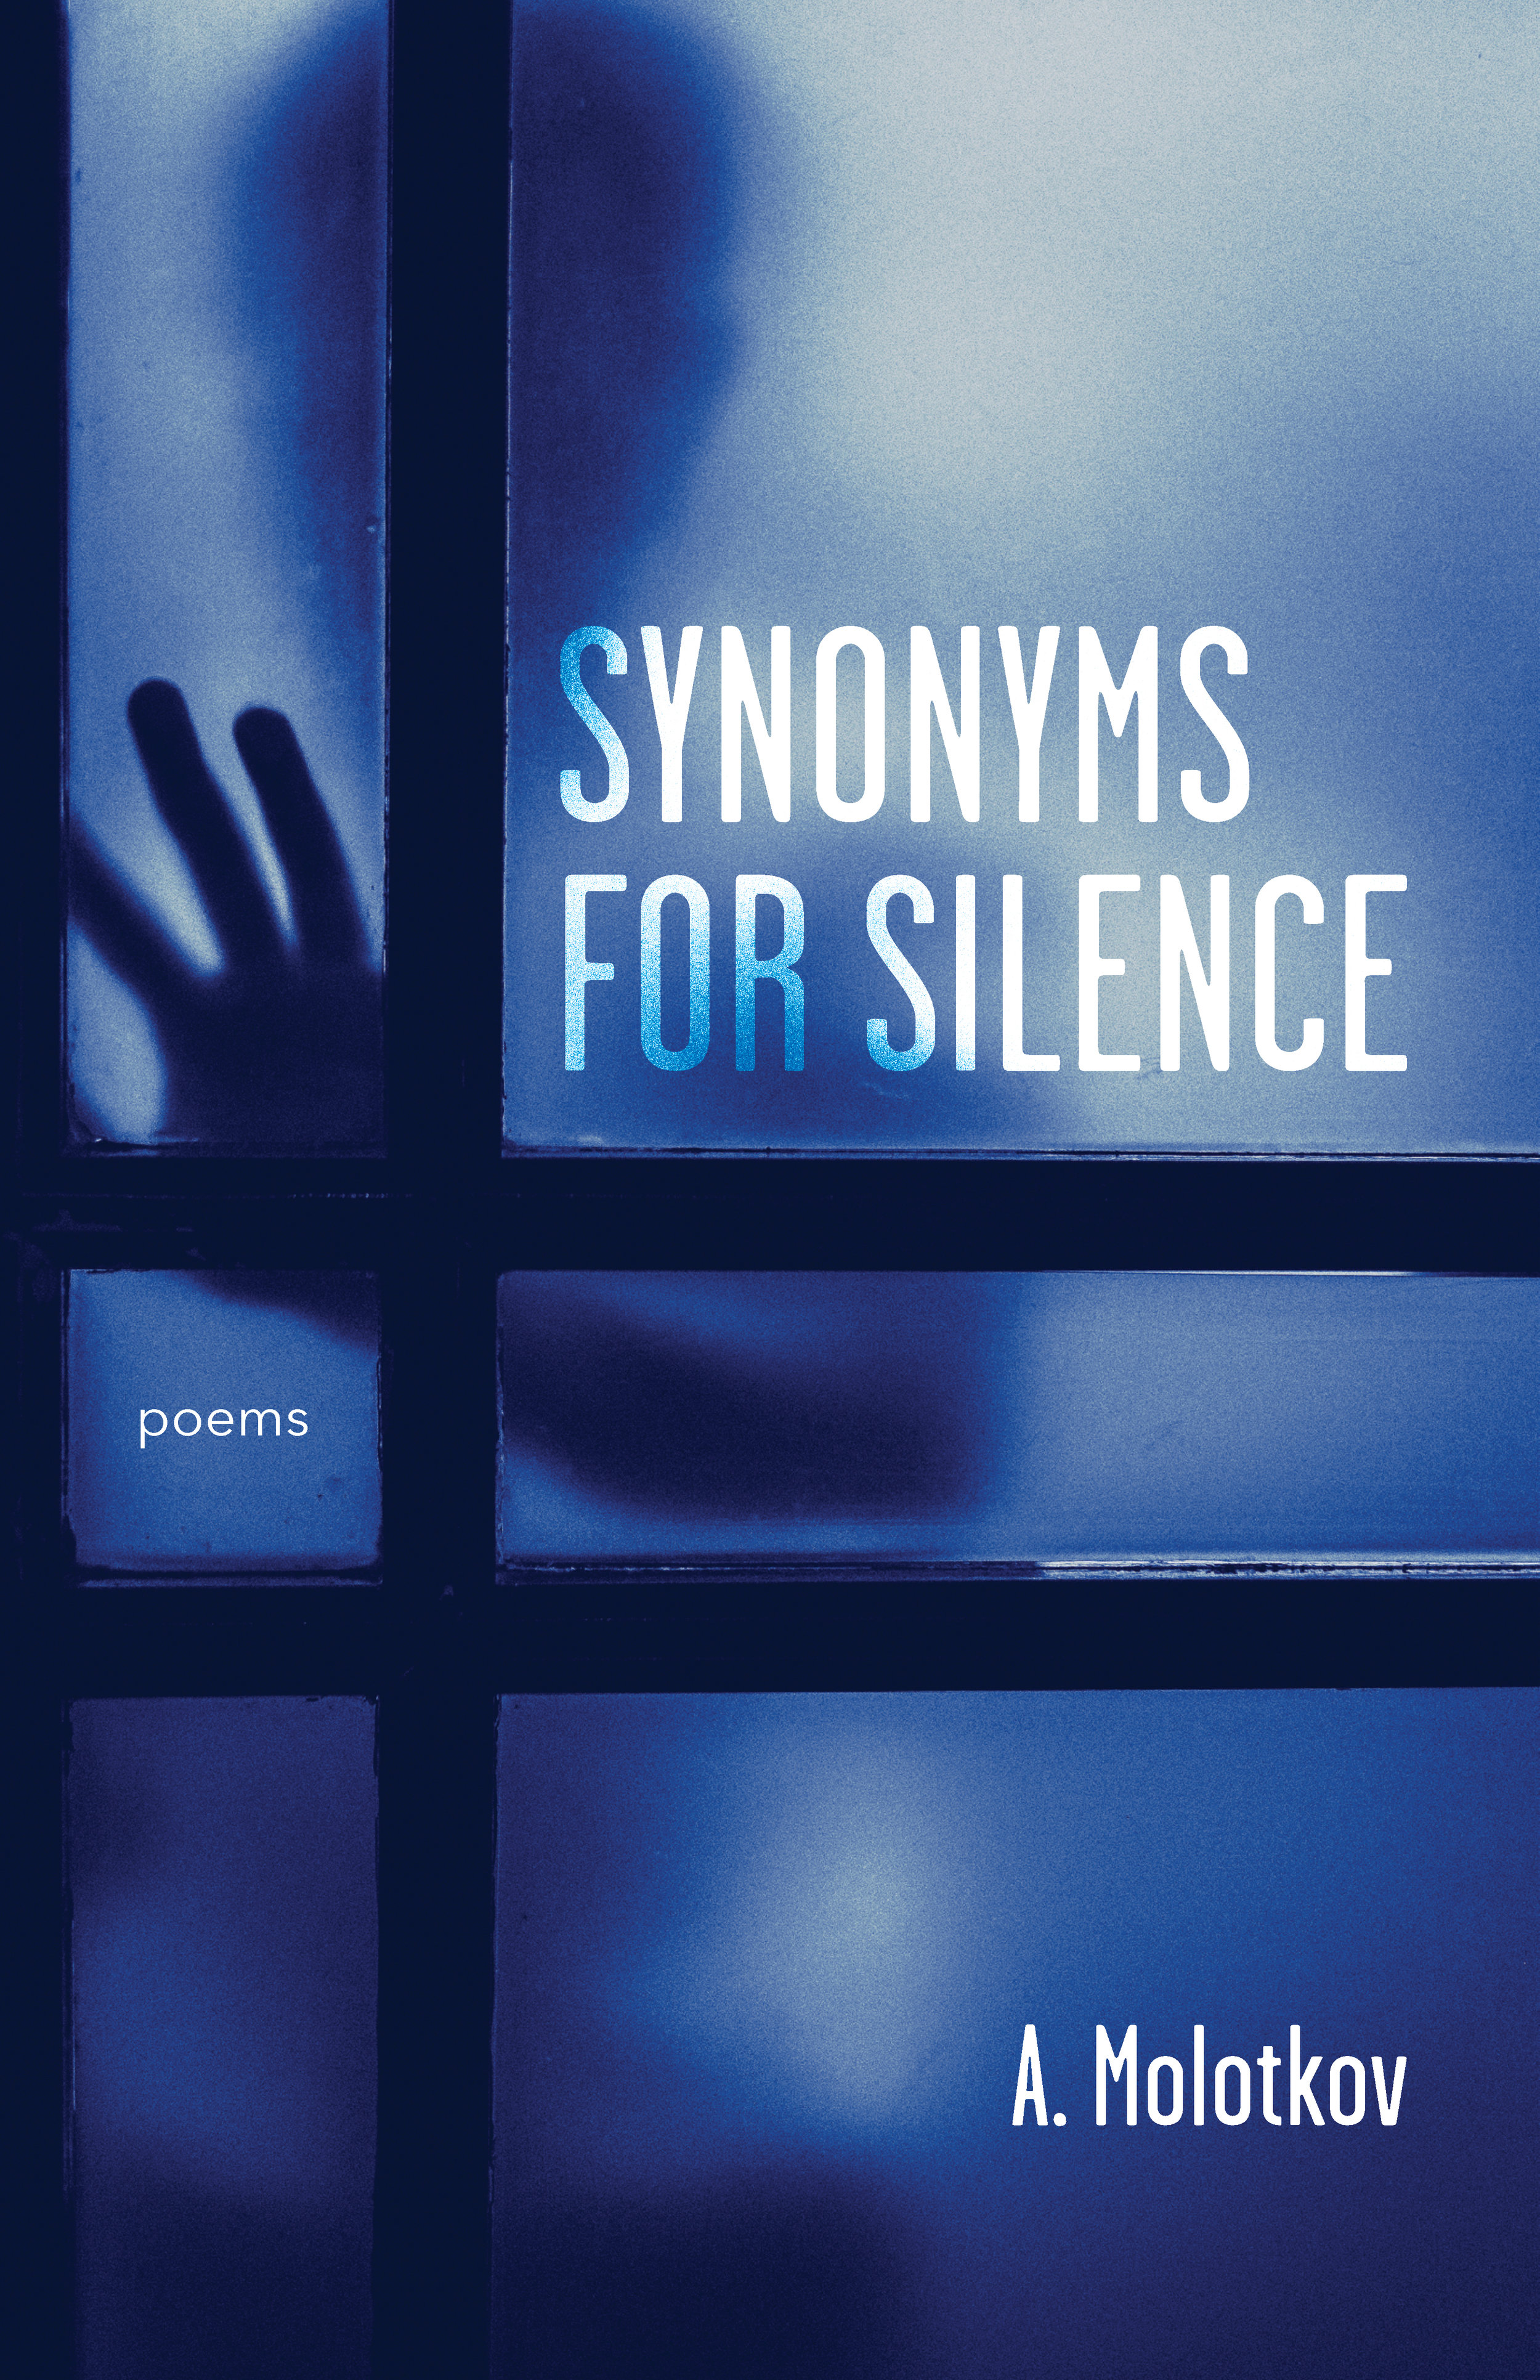 Synonyms for Silence Cover.jpg